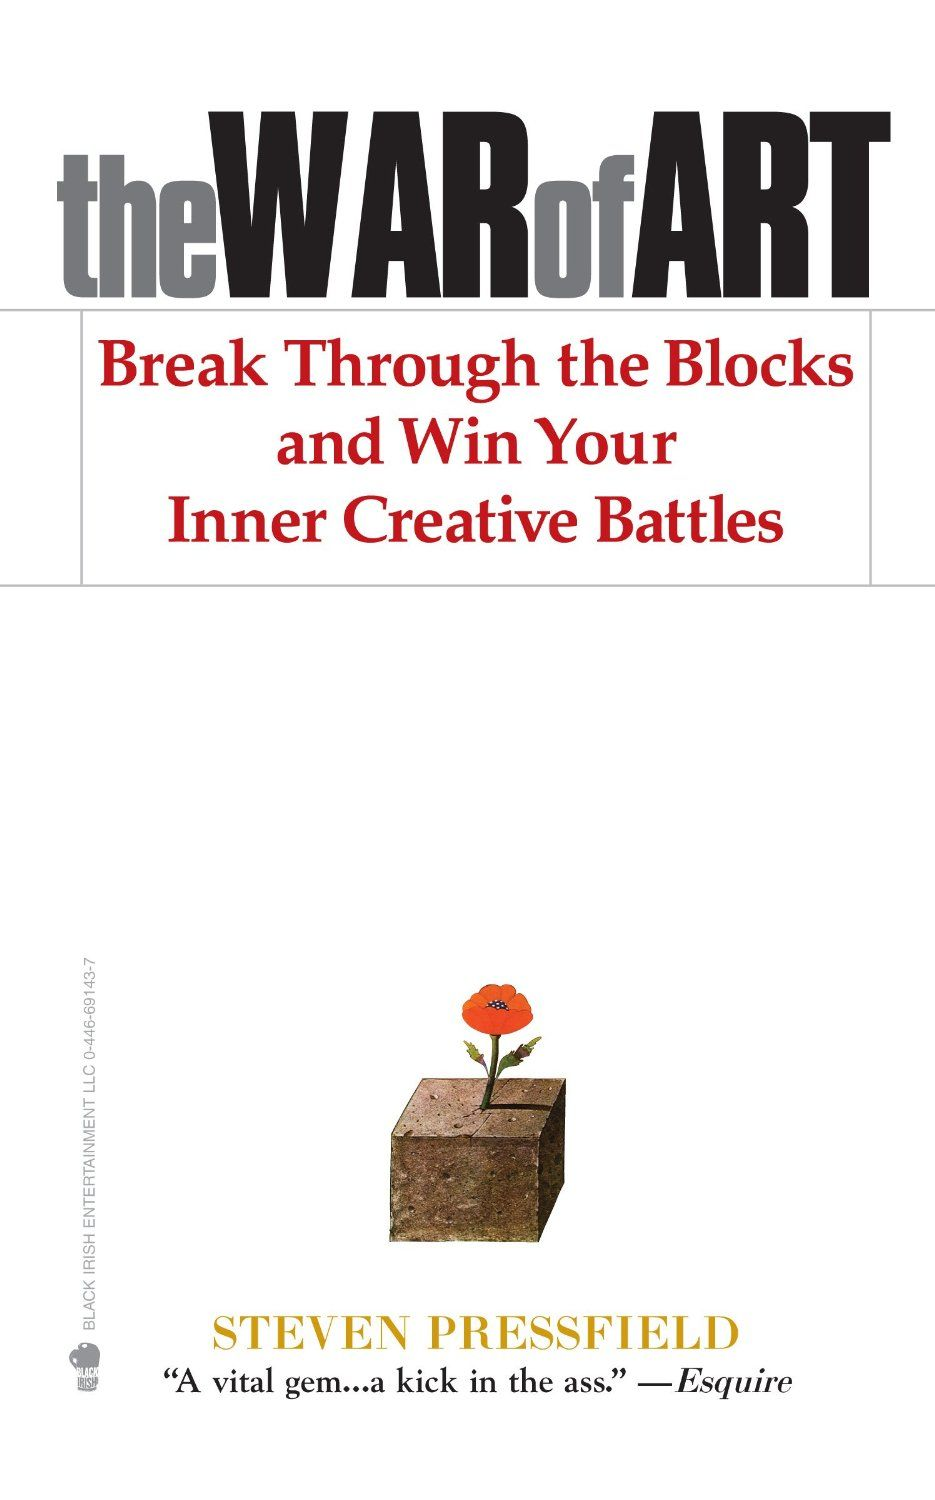 The War of Art. Break Blocks and Win Creative Battles. Inspirational book that will help kick your creativity into high great. A great entrepreneurial bool that will help kickstart the creative side of your brain regardless of your field.  Top business and entrepreneur book. #selfimprovement #selfhelp #growthmindset See book here: http://www.developgoodhabits.com/War-Art